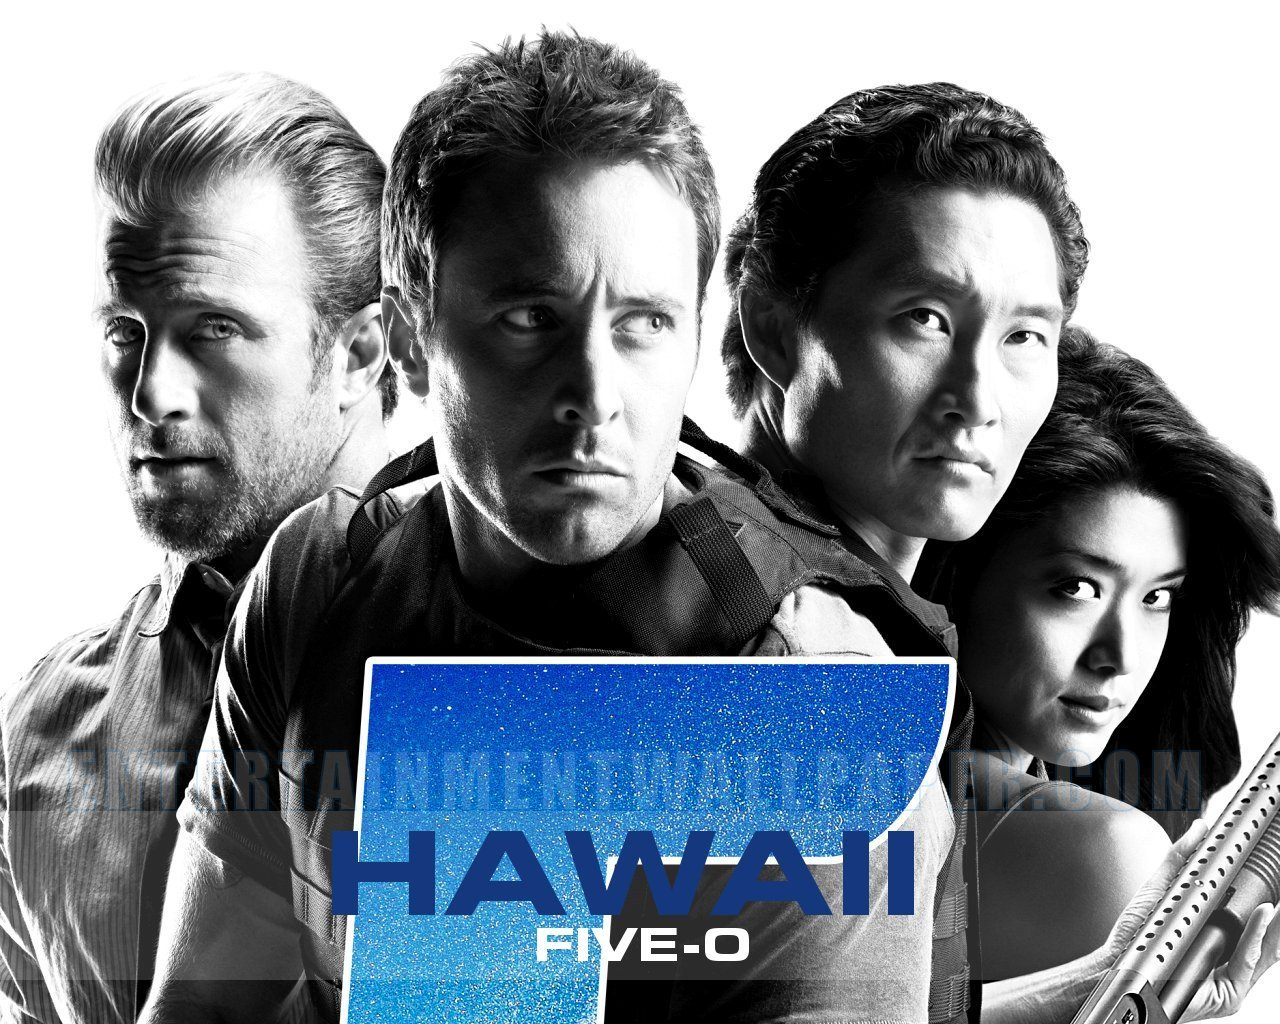 Hawaii Five-0 (2010) Hawaii Five-O